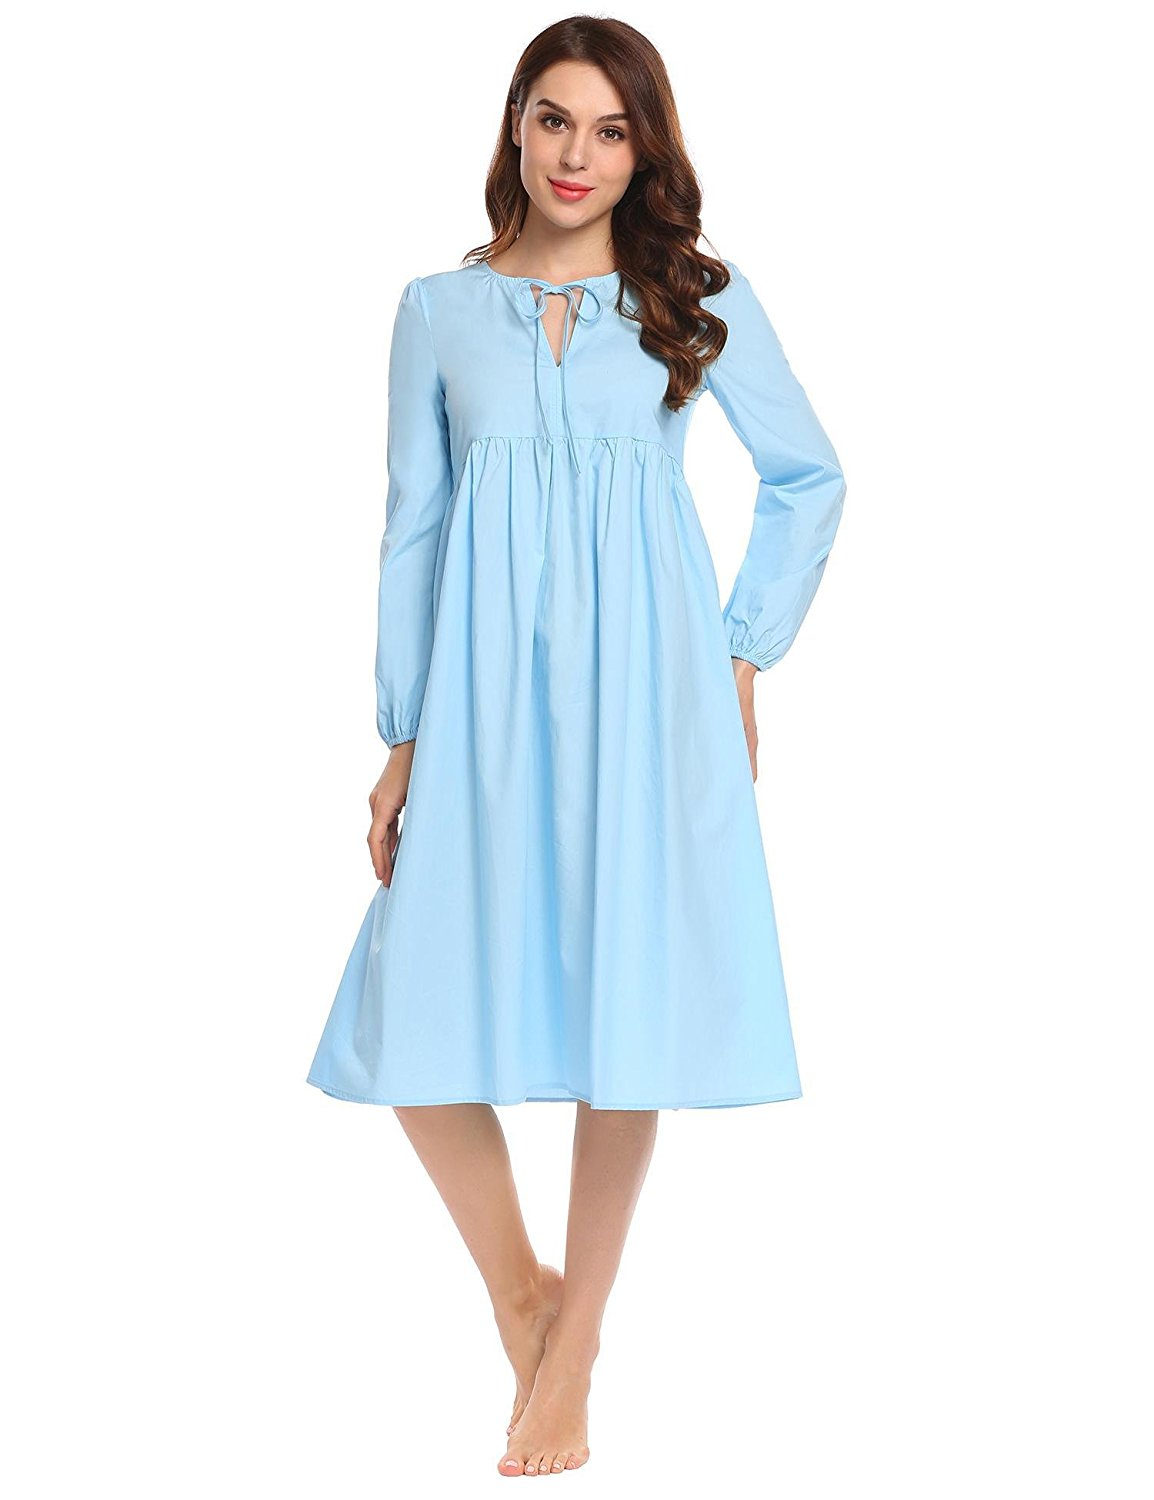 4cd0dff92d9 Dicesnow Women s Nightdress Long Sleeve Vintage Nightgown Victorian  Sleepwear Lounge Dress